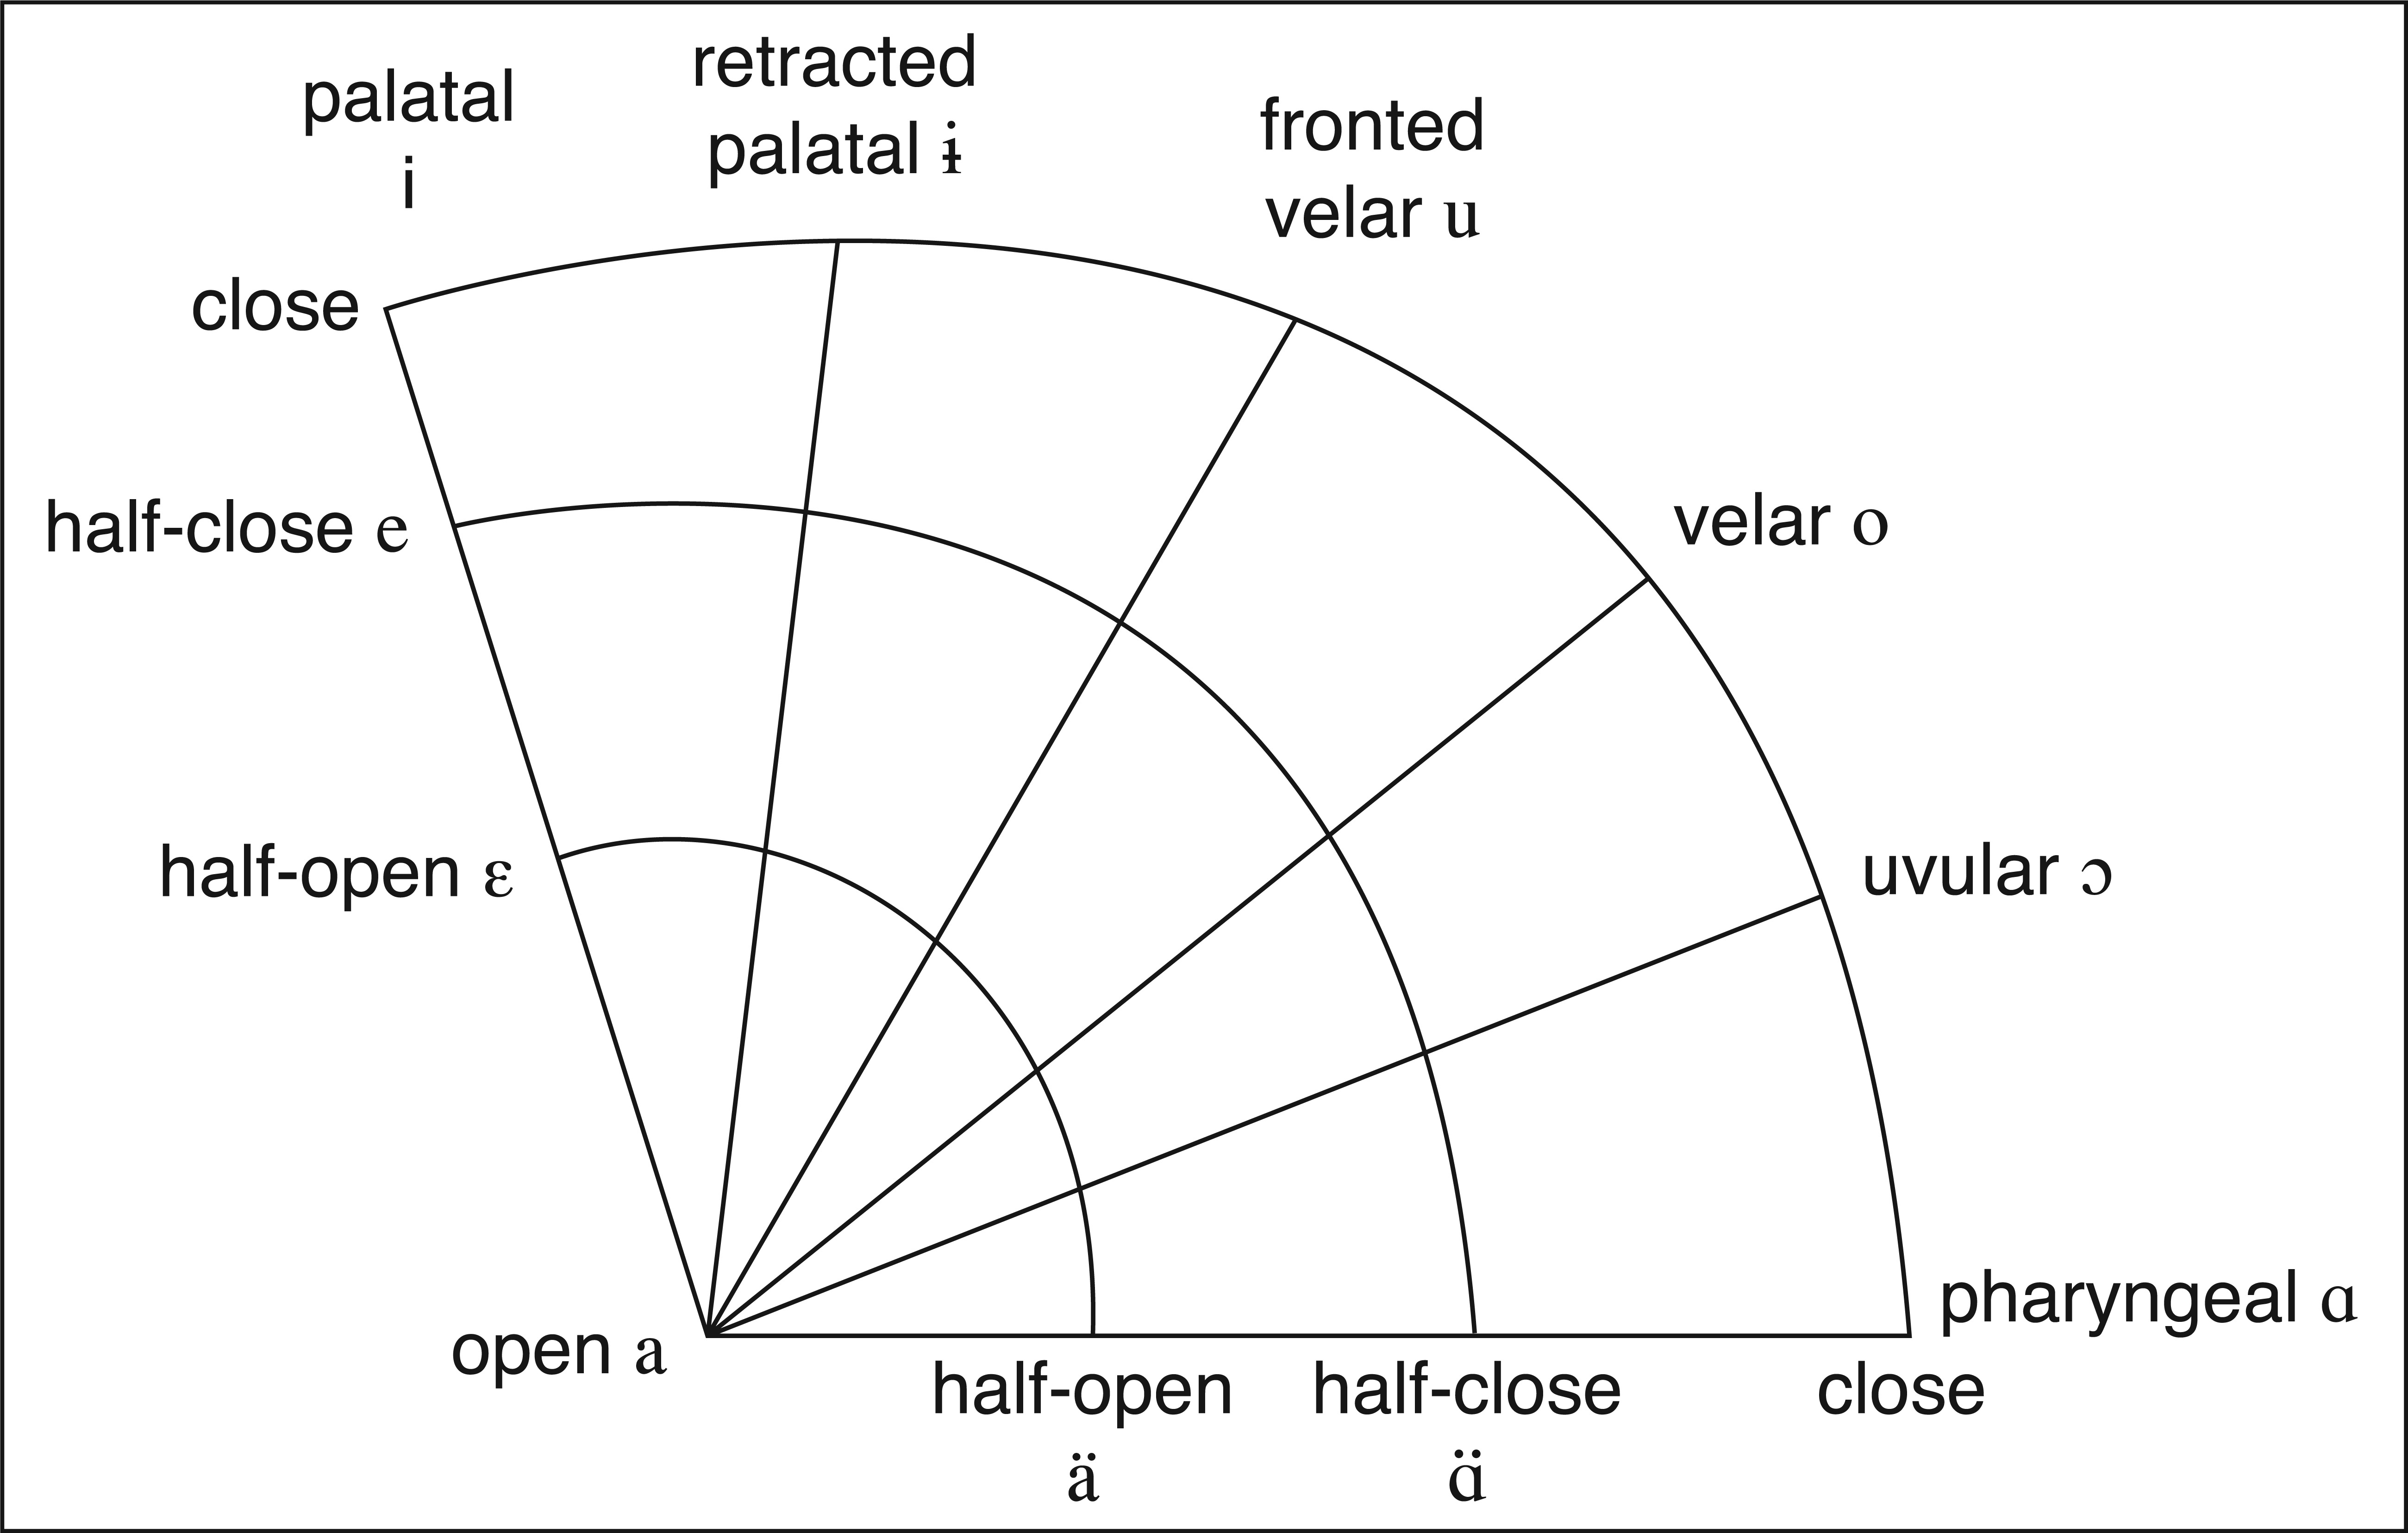 Routledge handbooks online catfords polar coordinate scheme for vowel classification diagram based on pooptronica